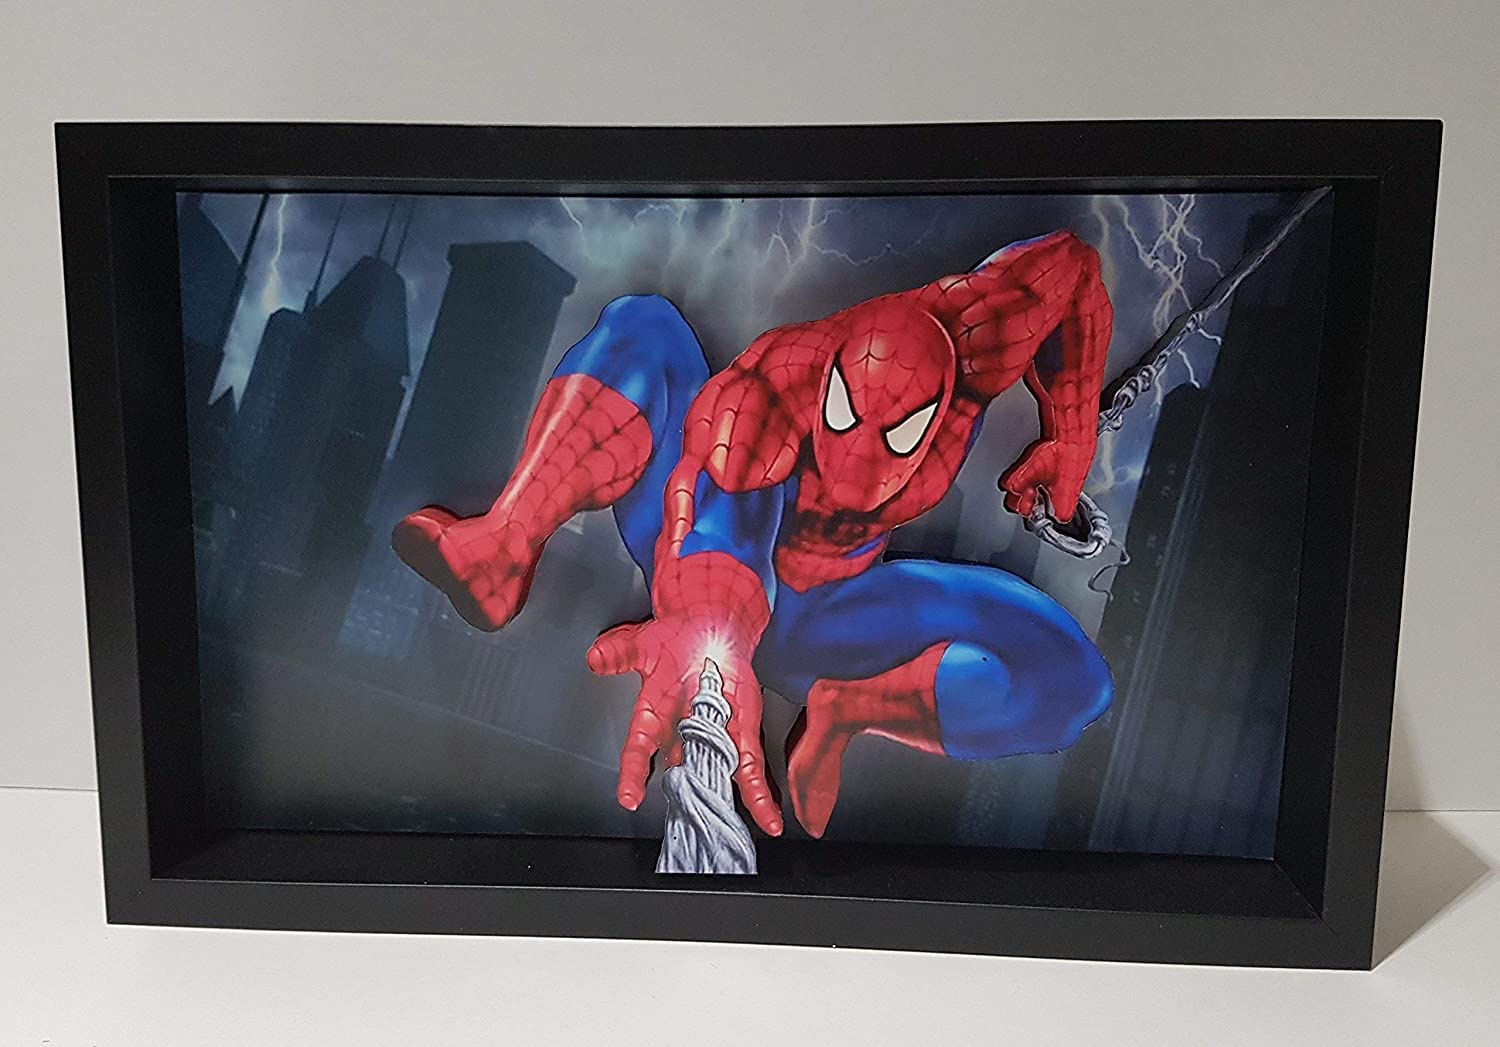 Spider-Man Picture Framed 3D Art Peter Sales of SALE items from new works Hero Marvel Bombing new work Parker Super